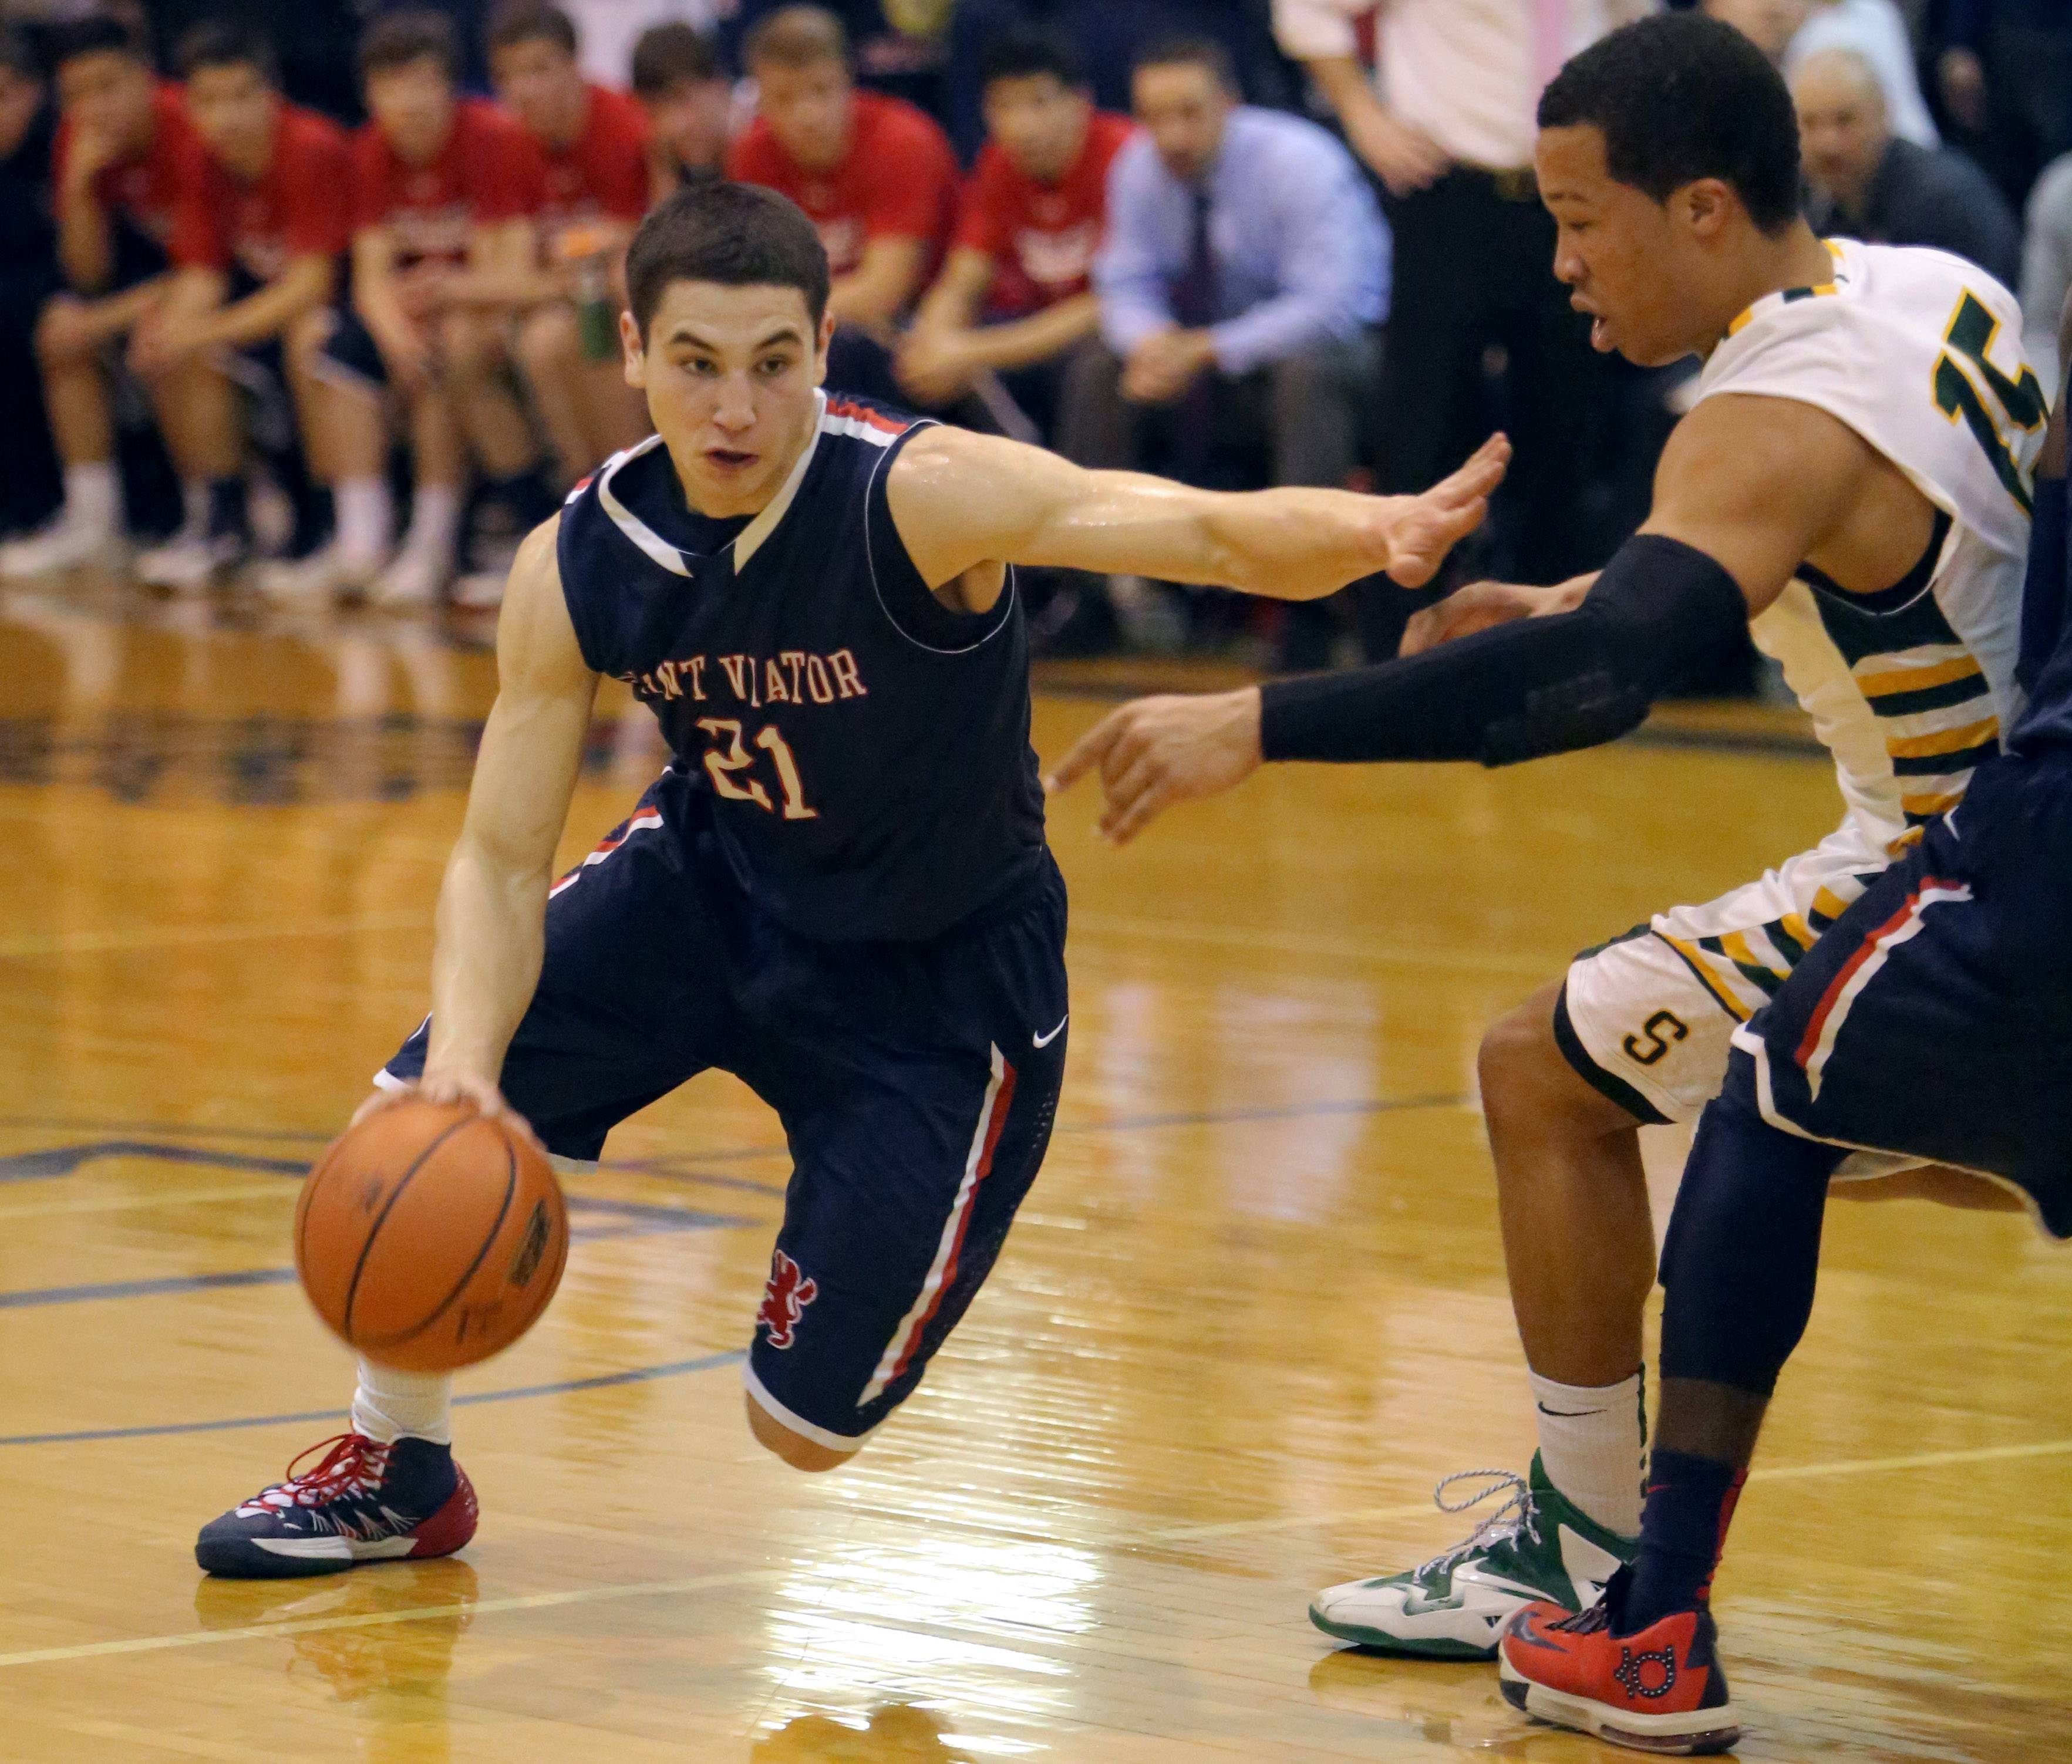 Images: Stevenson vs. St. Viator boys basketball